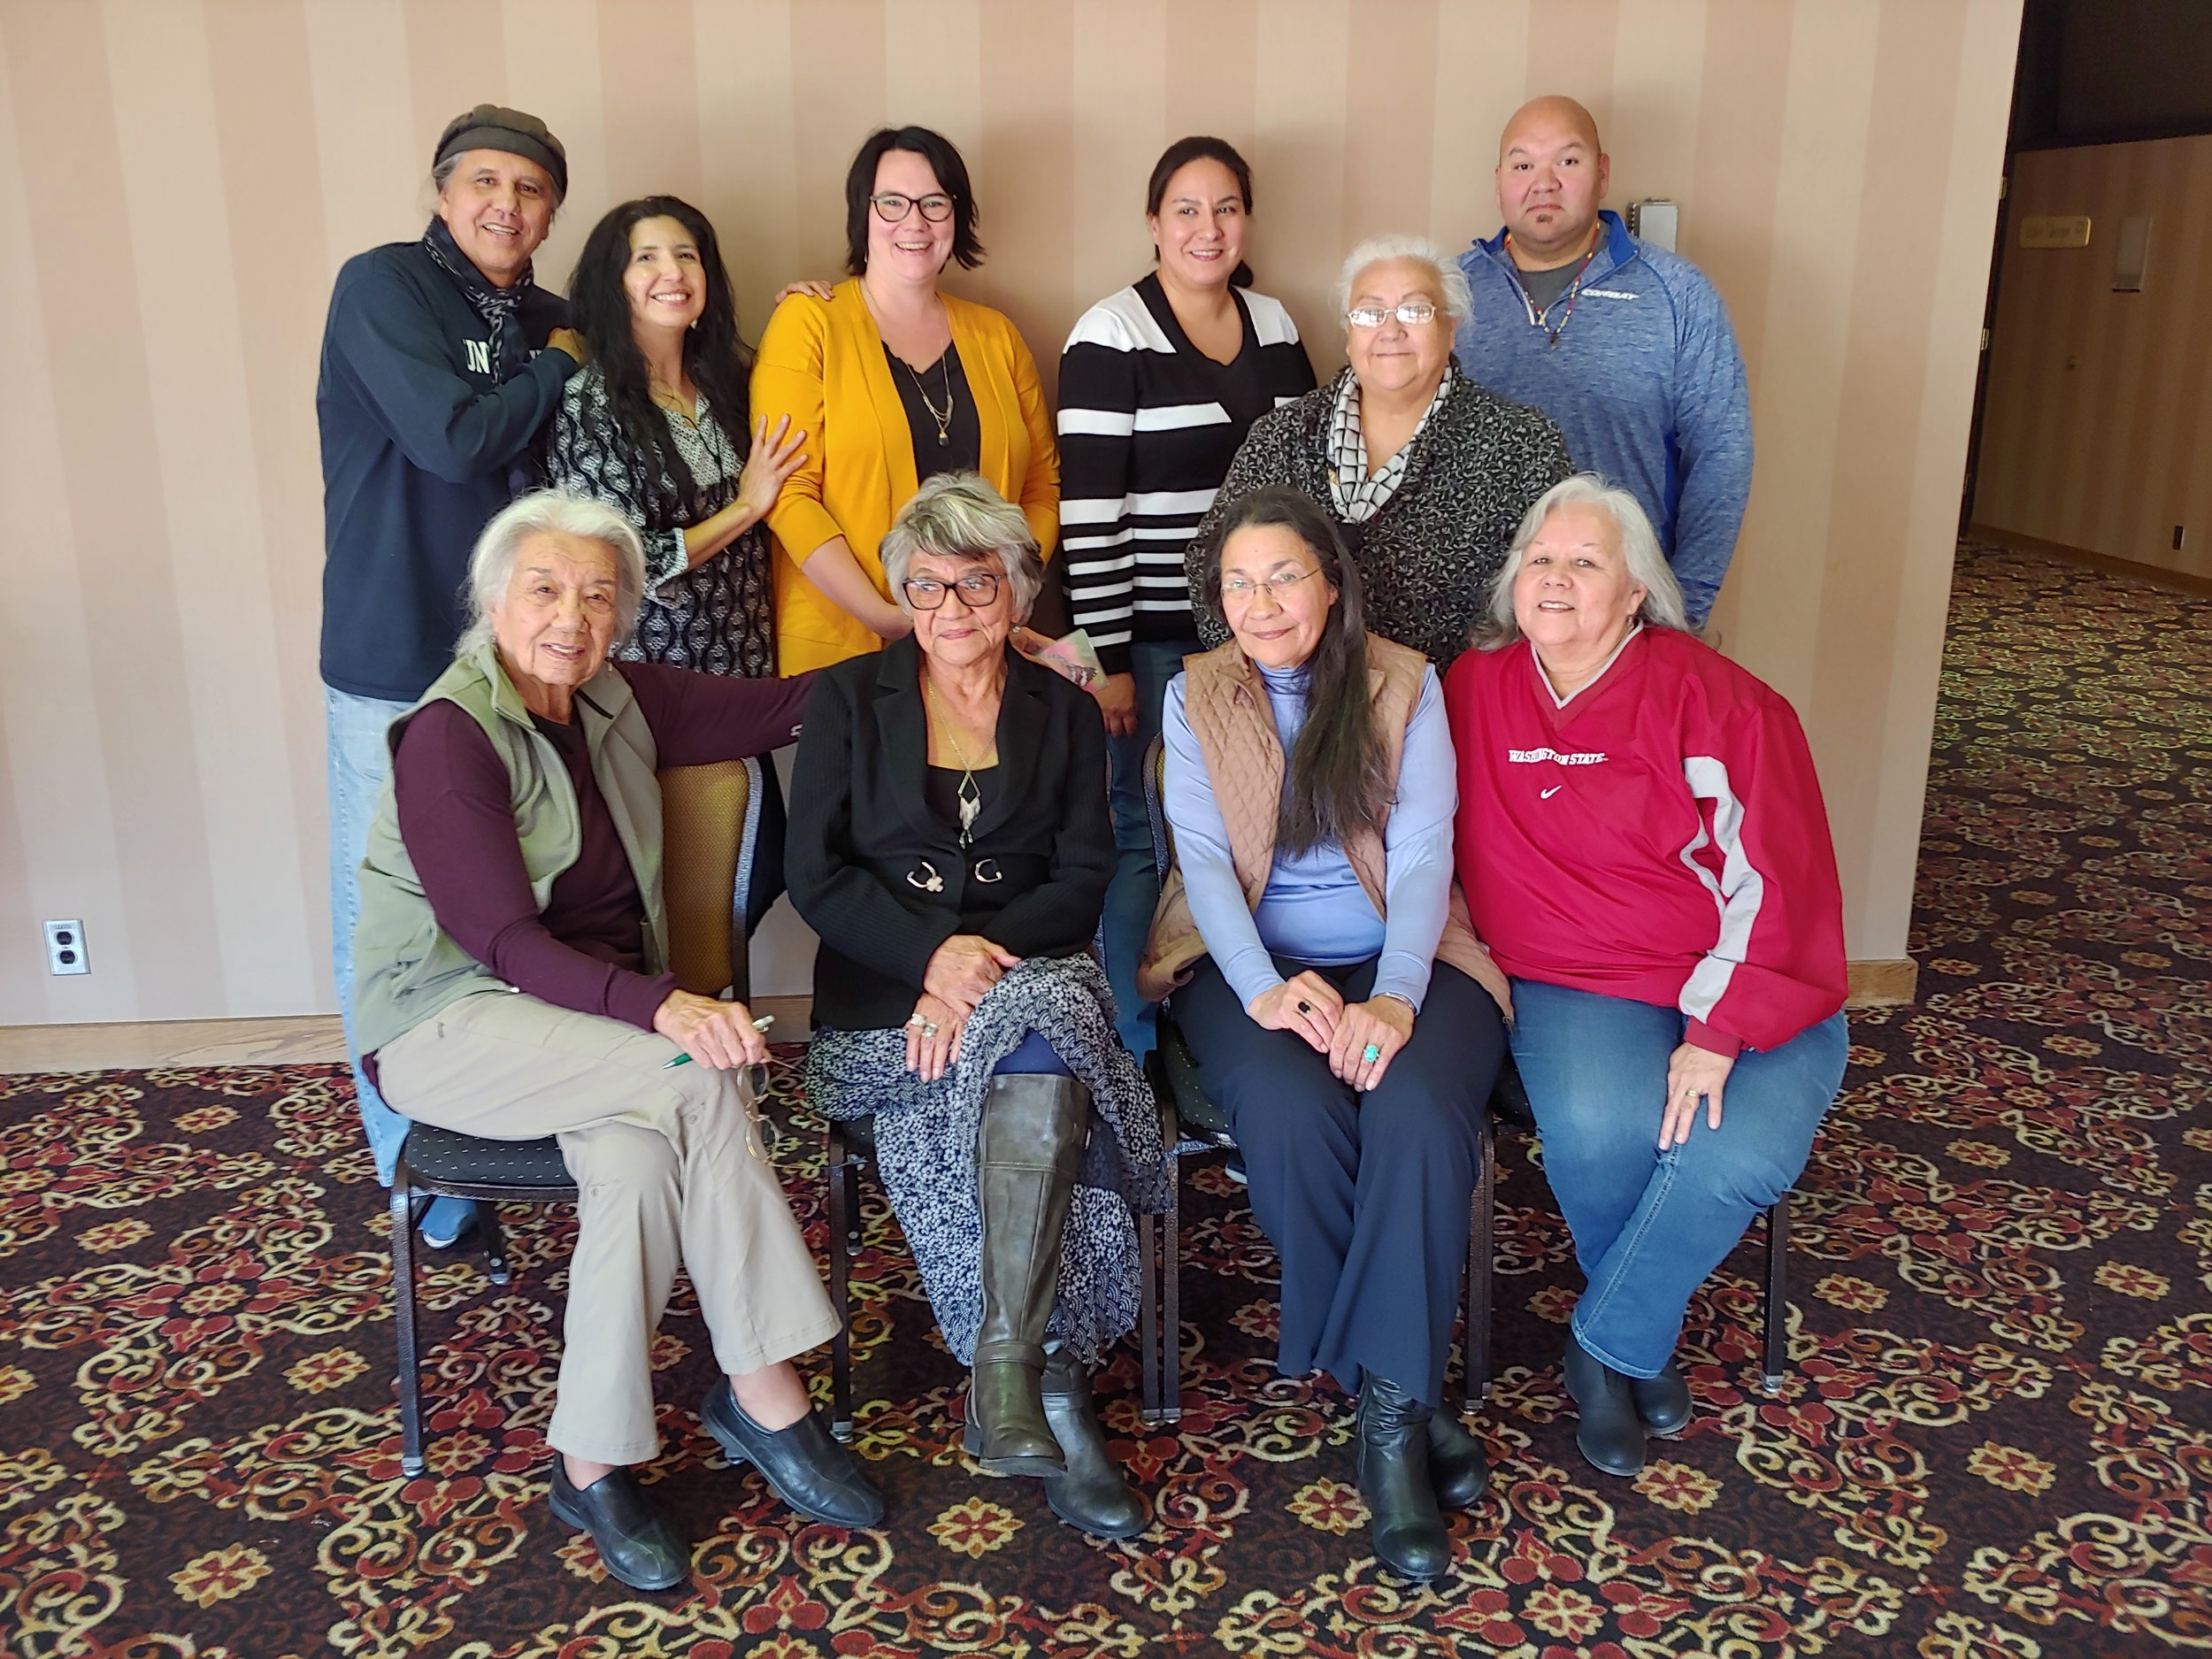 Reorganizing business meeting of the Oak Lake Writers Society in Pierre, SD, on October 20, 2018. Members in attendance (left to right, back row) Edward Valandra, Mabel Picotte (OLWS Chair), Tasiyagnunpa (Livermont) Barondeau (OLWS Sec/Treas), Sarah Hernandez (OLWS Director), Deanna Stands, Ross DuBray, (left to right, front row) Elizabeth Cook-Lynn, Lydia Whirlwind Soldier, Lanniko Lee, Patty Bordeaux Nelson. Present via phone Tate Walker (unpictured).